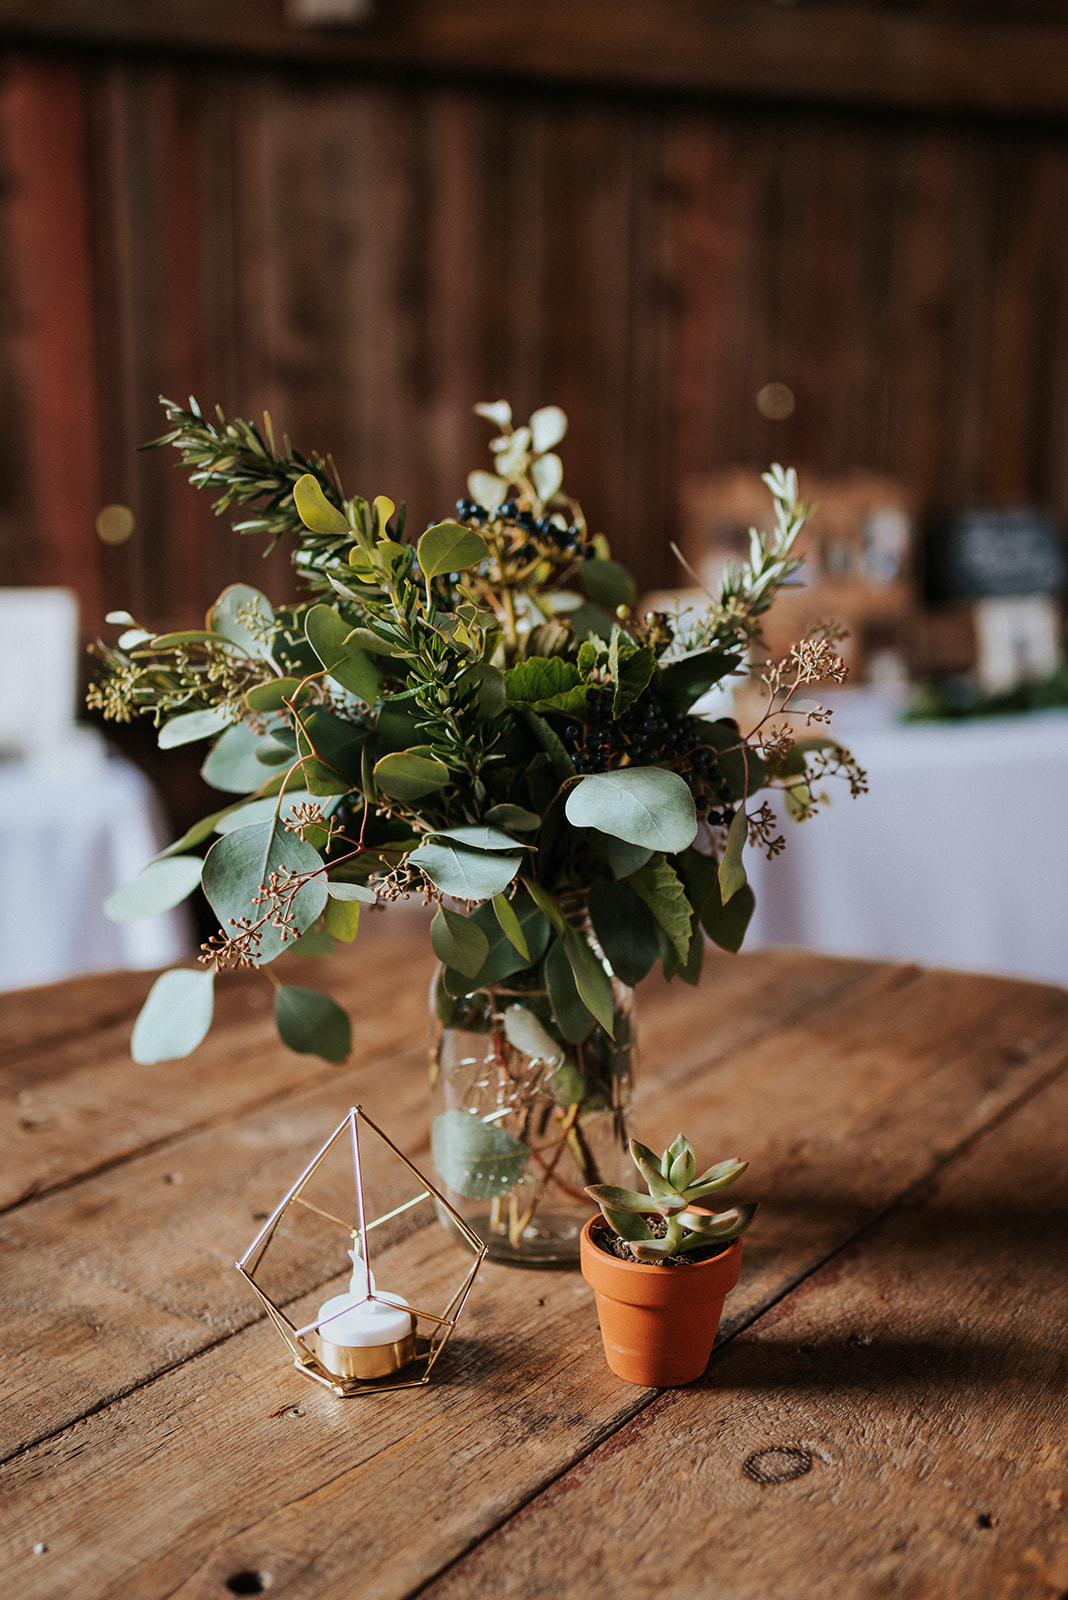 overthevineswisconsinwedding_1068.jpg